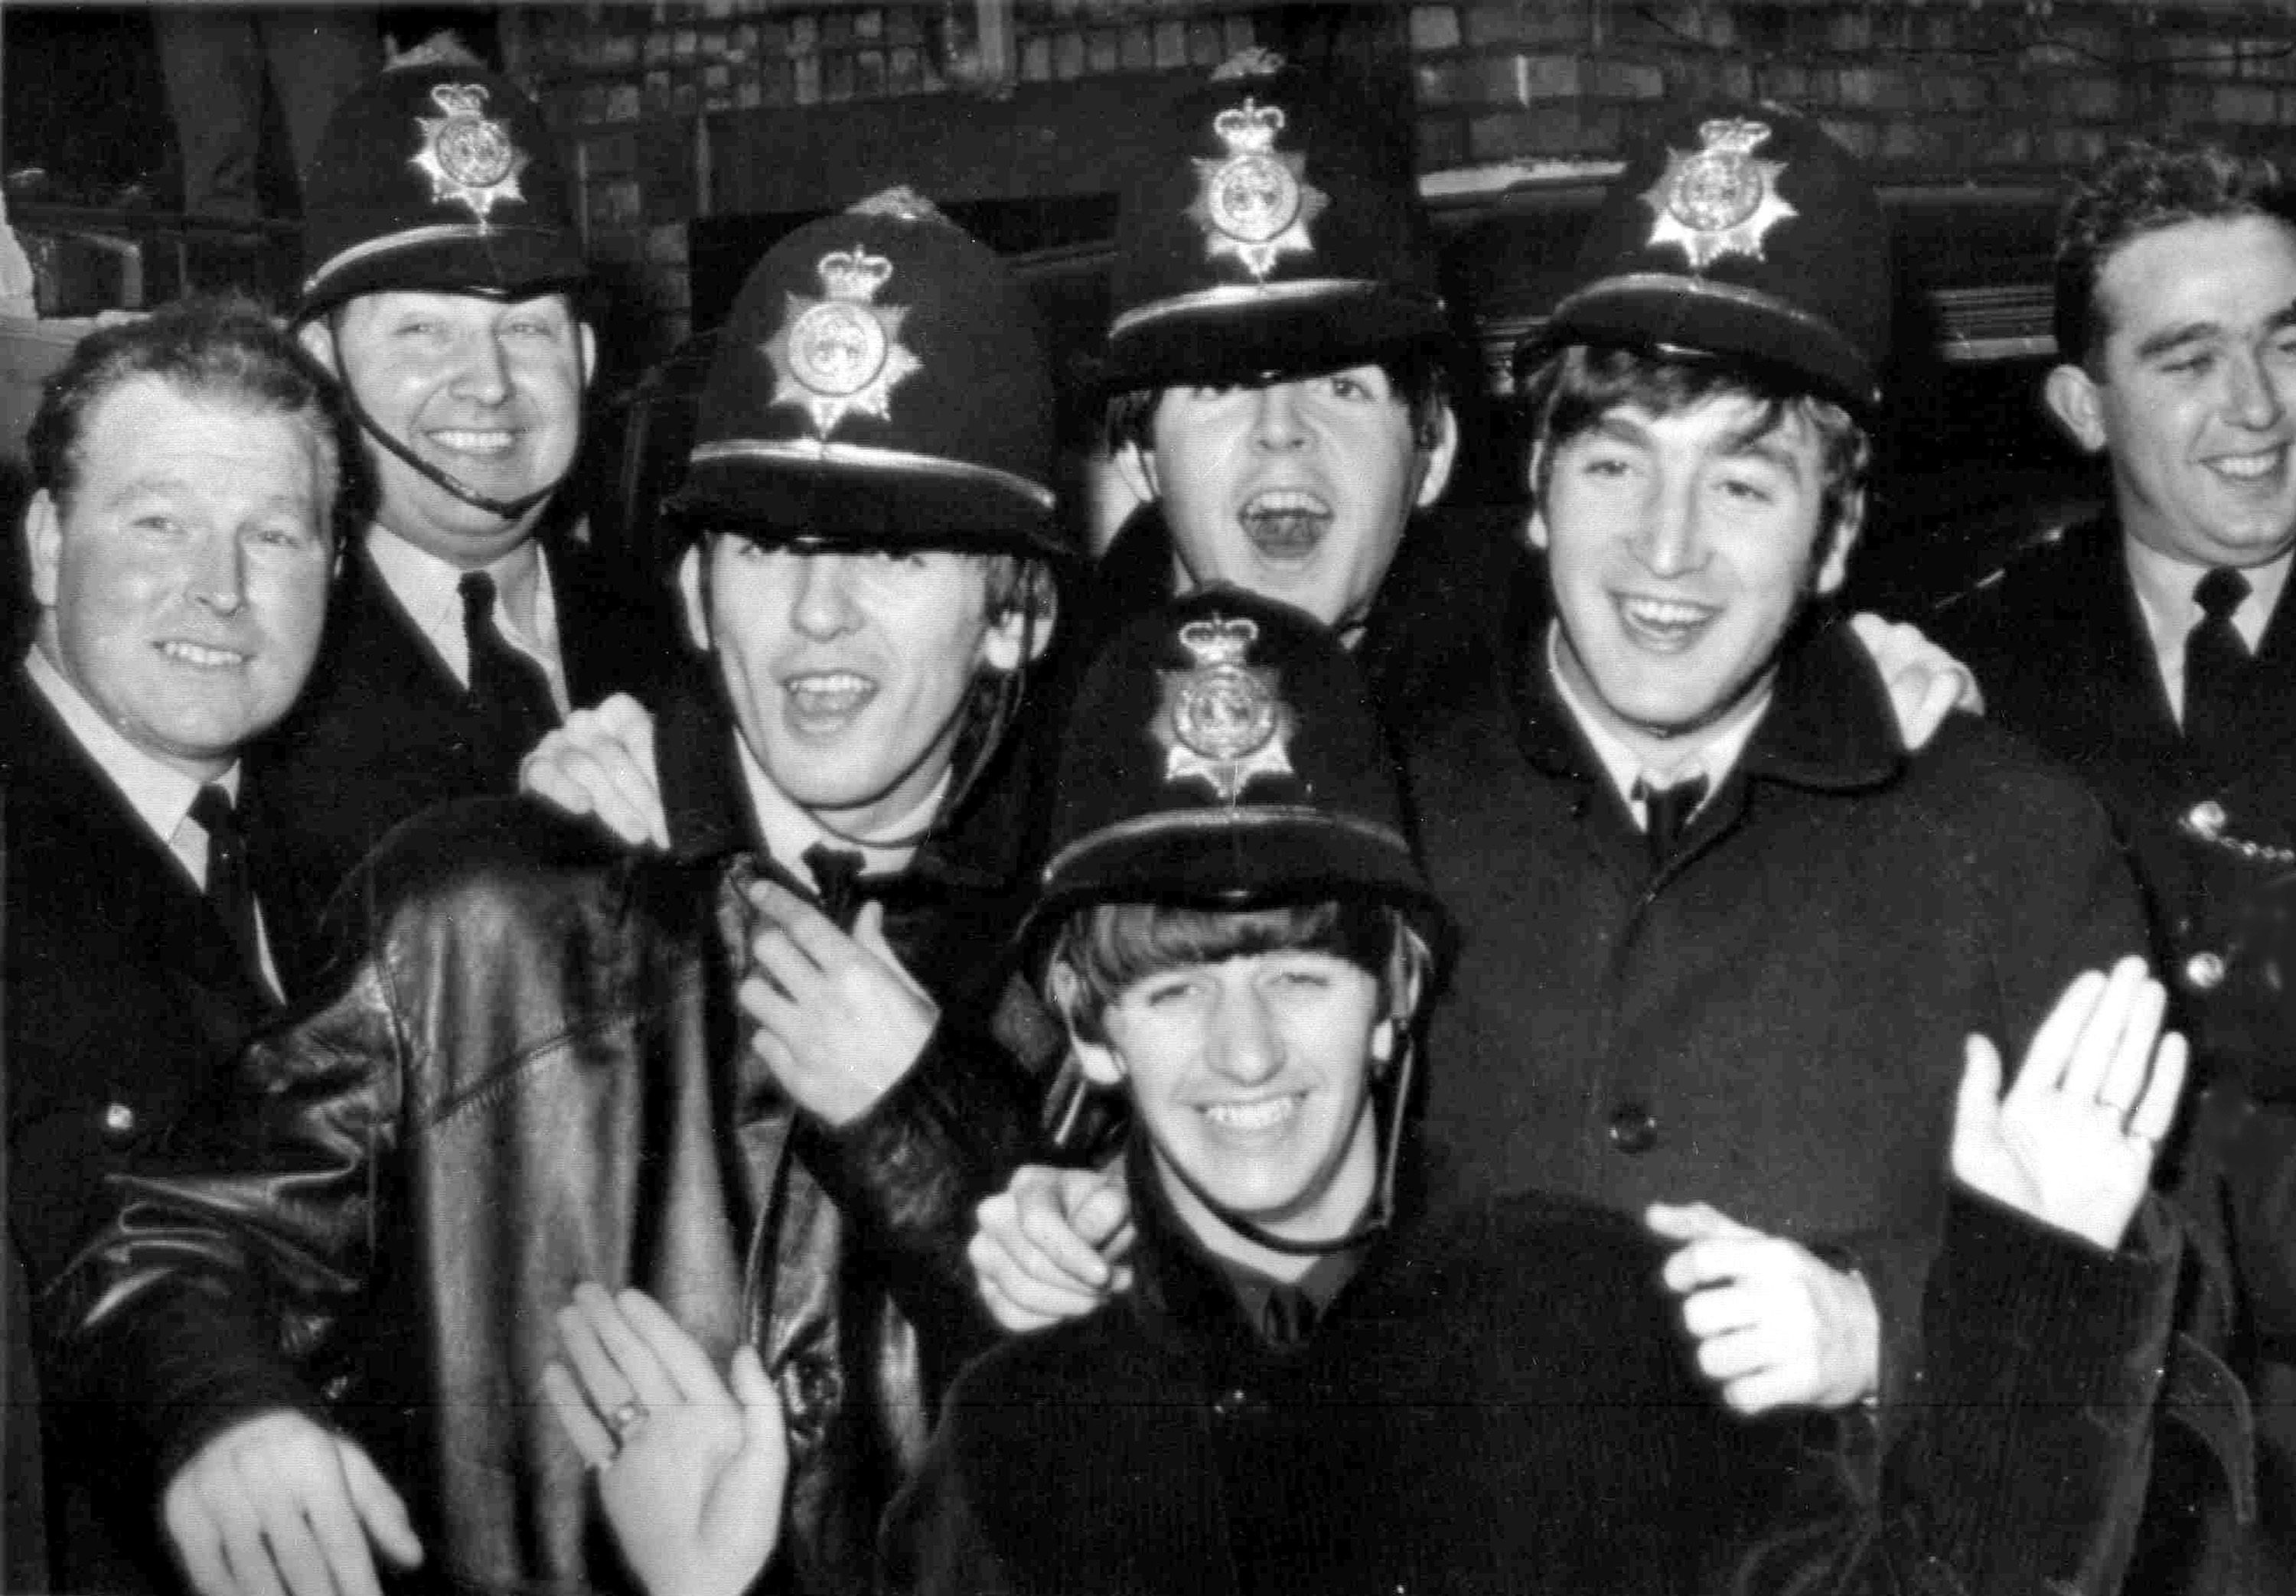 The Beatles arrived almost unnoticed at the Hippodrome, Birmingham, Nov. 10, 1963, dressed as policemen. They are George Harrison, third left, Paul McCartney, John Lennon and Ringo Starr in front. Others in picture are real policemen. (AP Photo)